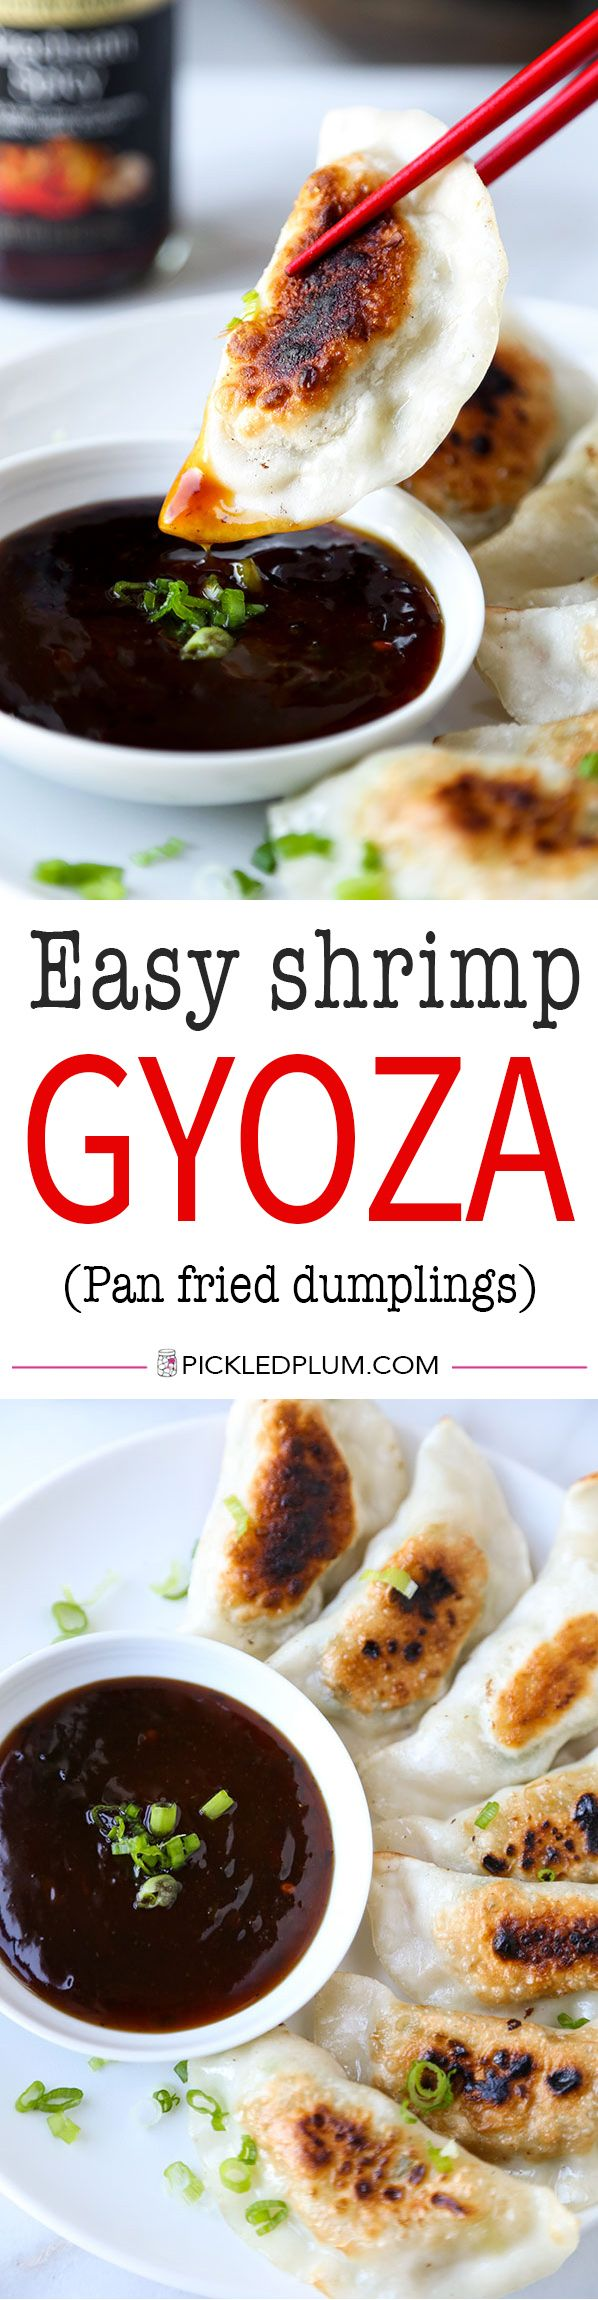 Shrimp Gyoza (pan fried dumplings) - Pillowy and tender pan-fried shrimp gyoza served with a fiery Szechuan spicy sauce. Recipe, dumplings, gyoza, appetizer, Chinese food, diy | pickledplum.com